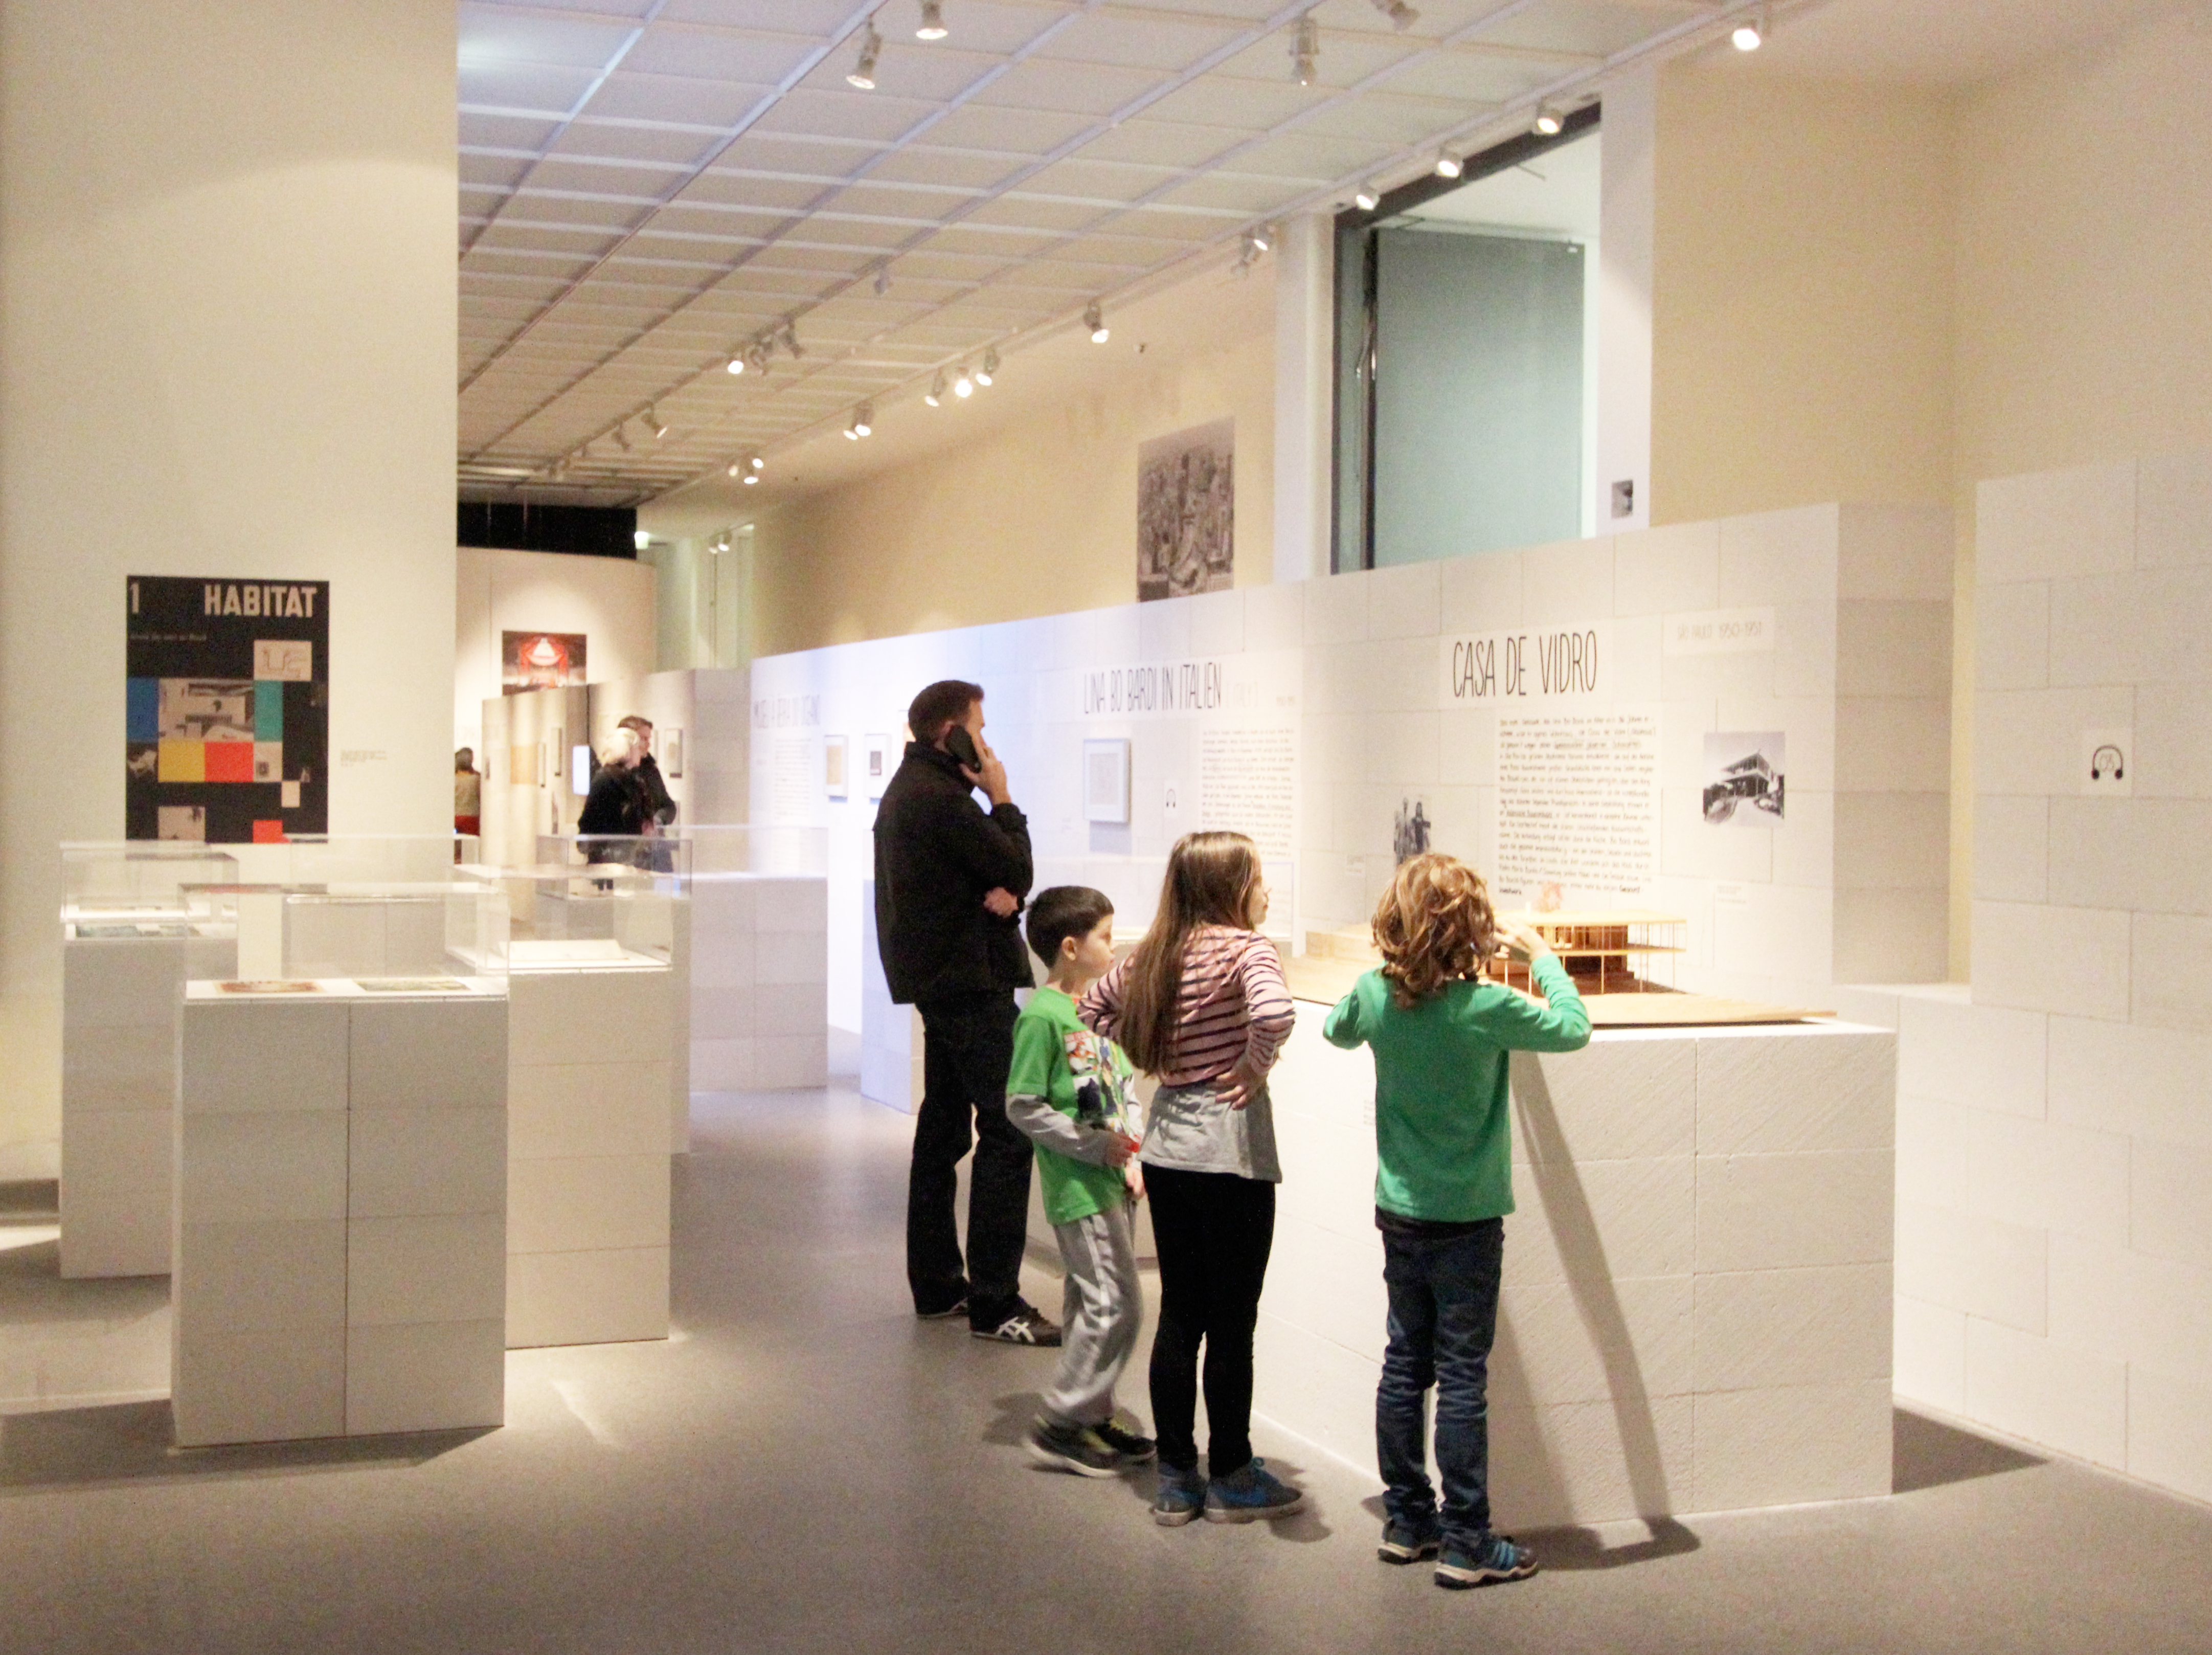 Kids in the architecture exhibition on Bo Bardi.